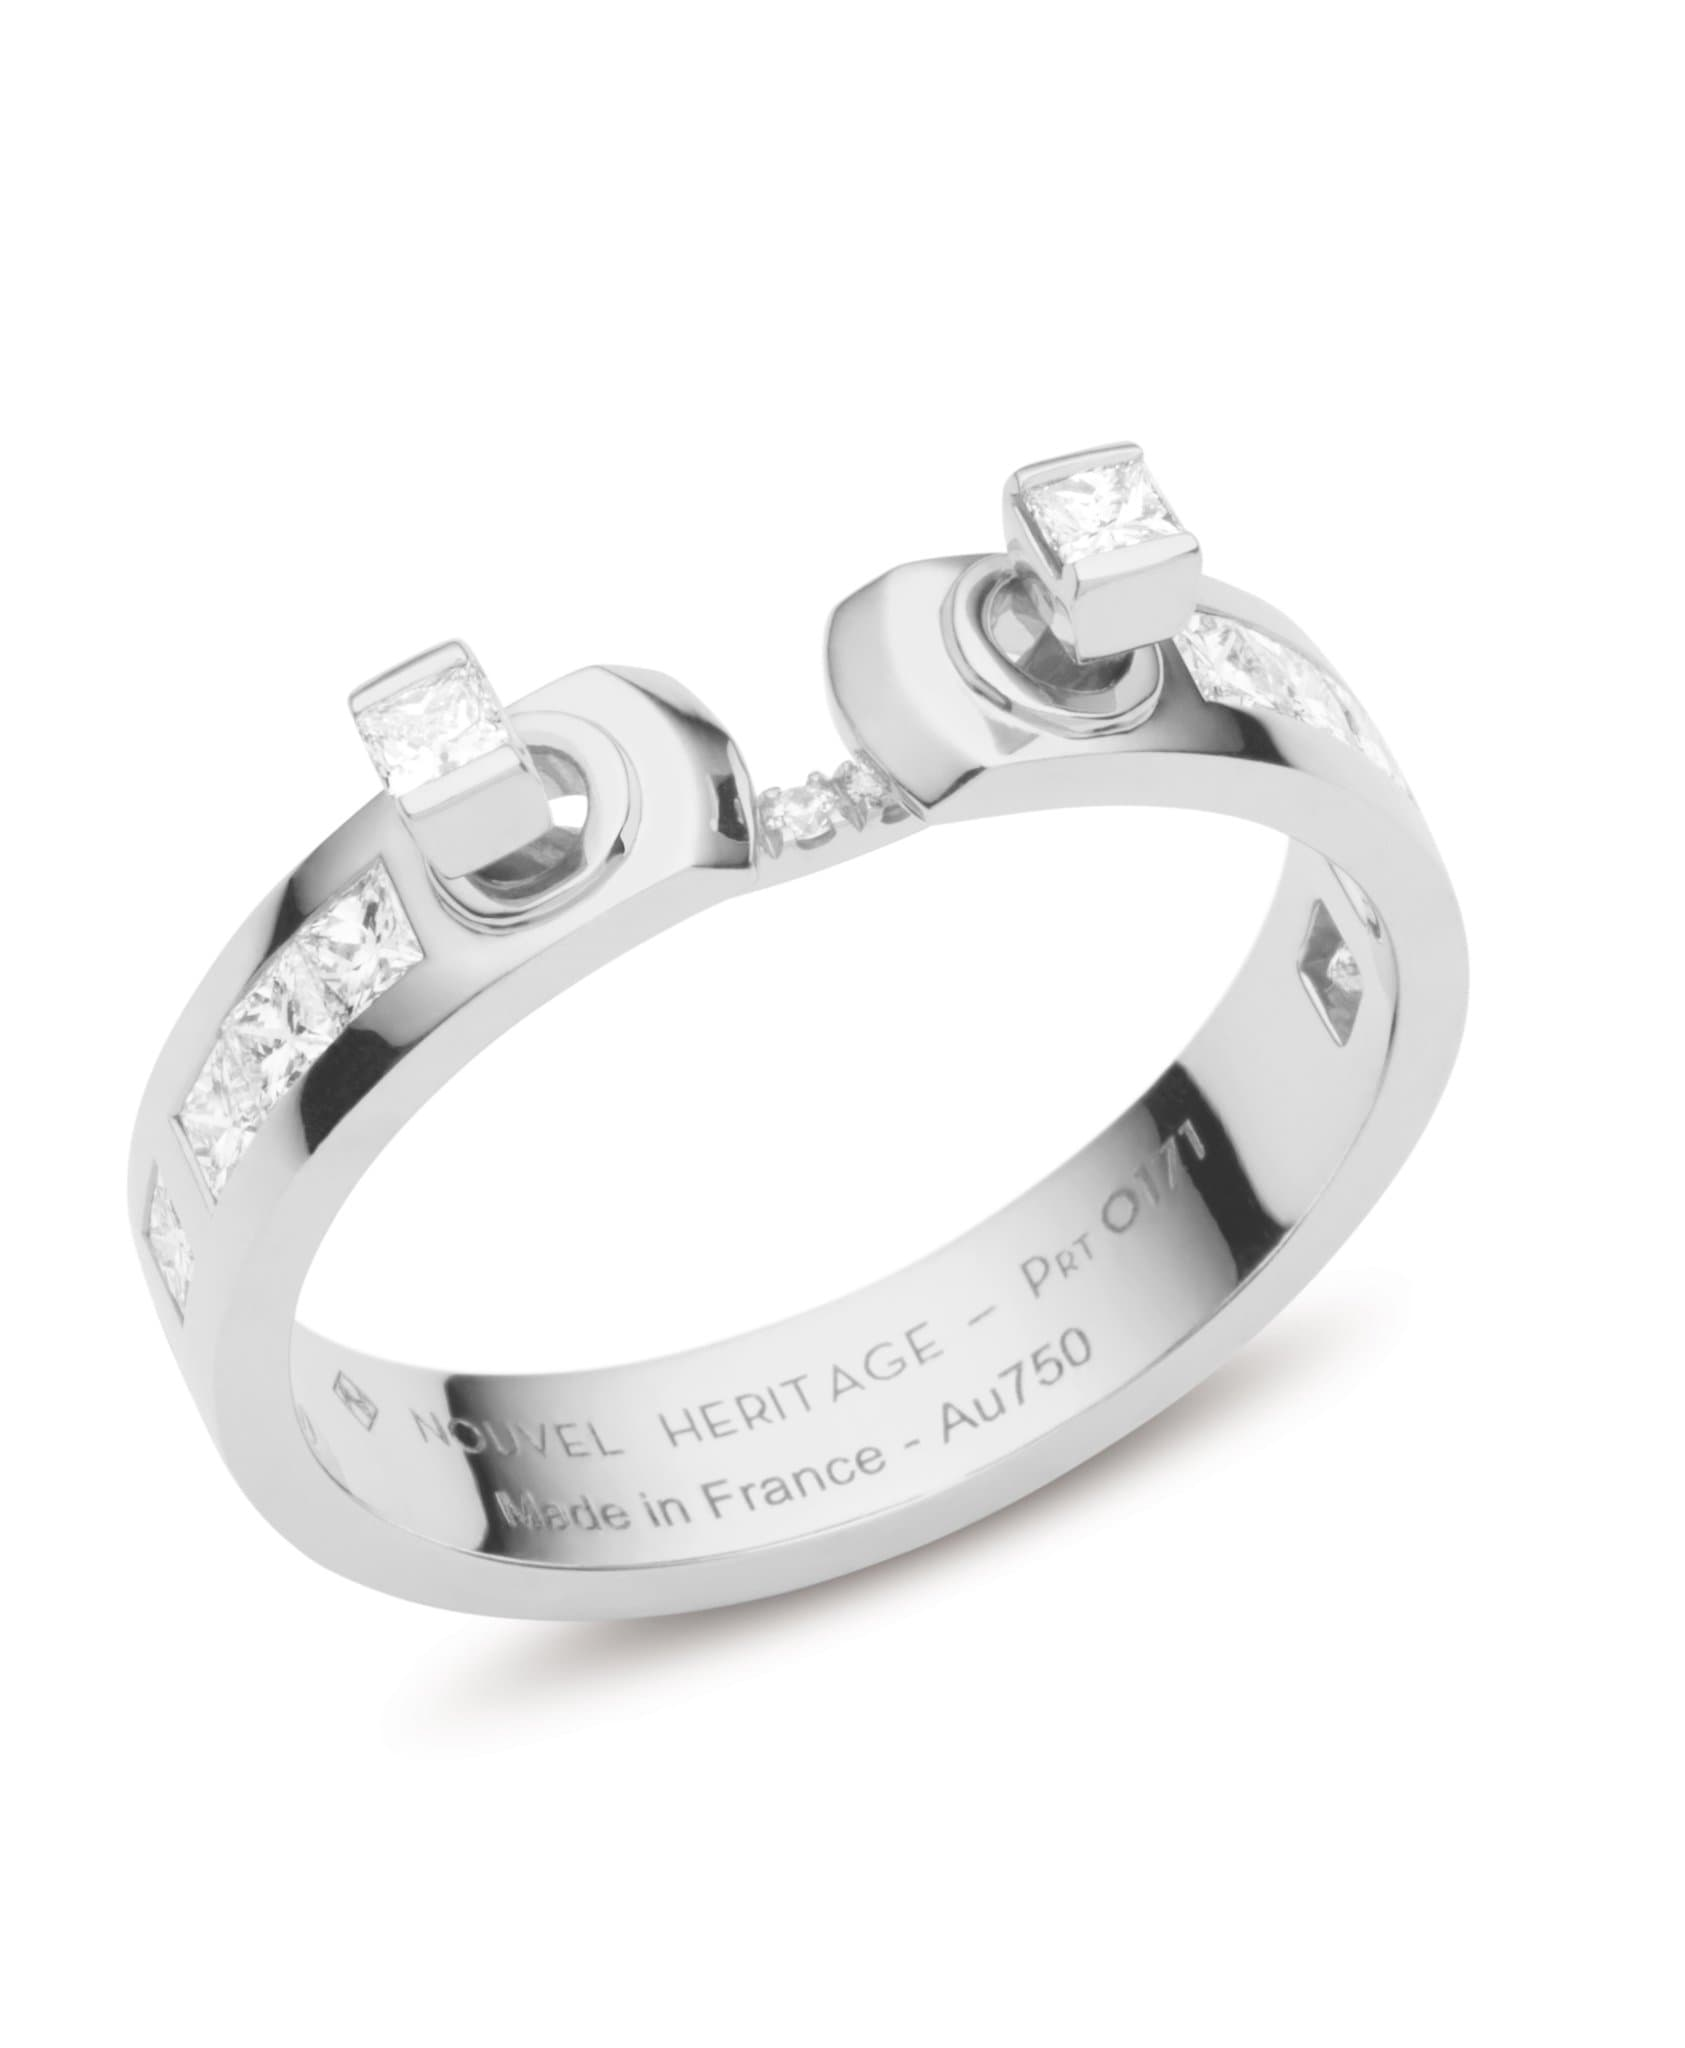 My Best Friend's Wedding Mood Ring: Discover Luxury Fine Jewelry | Nouvel Heritage || White Gold